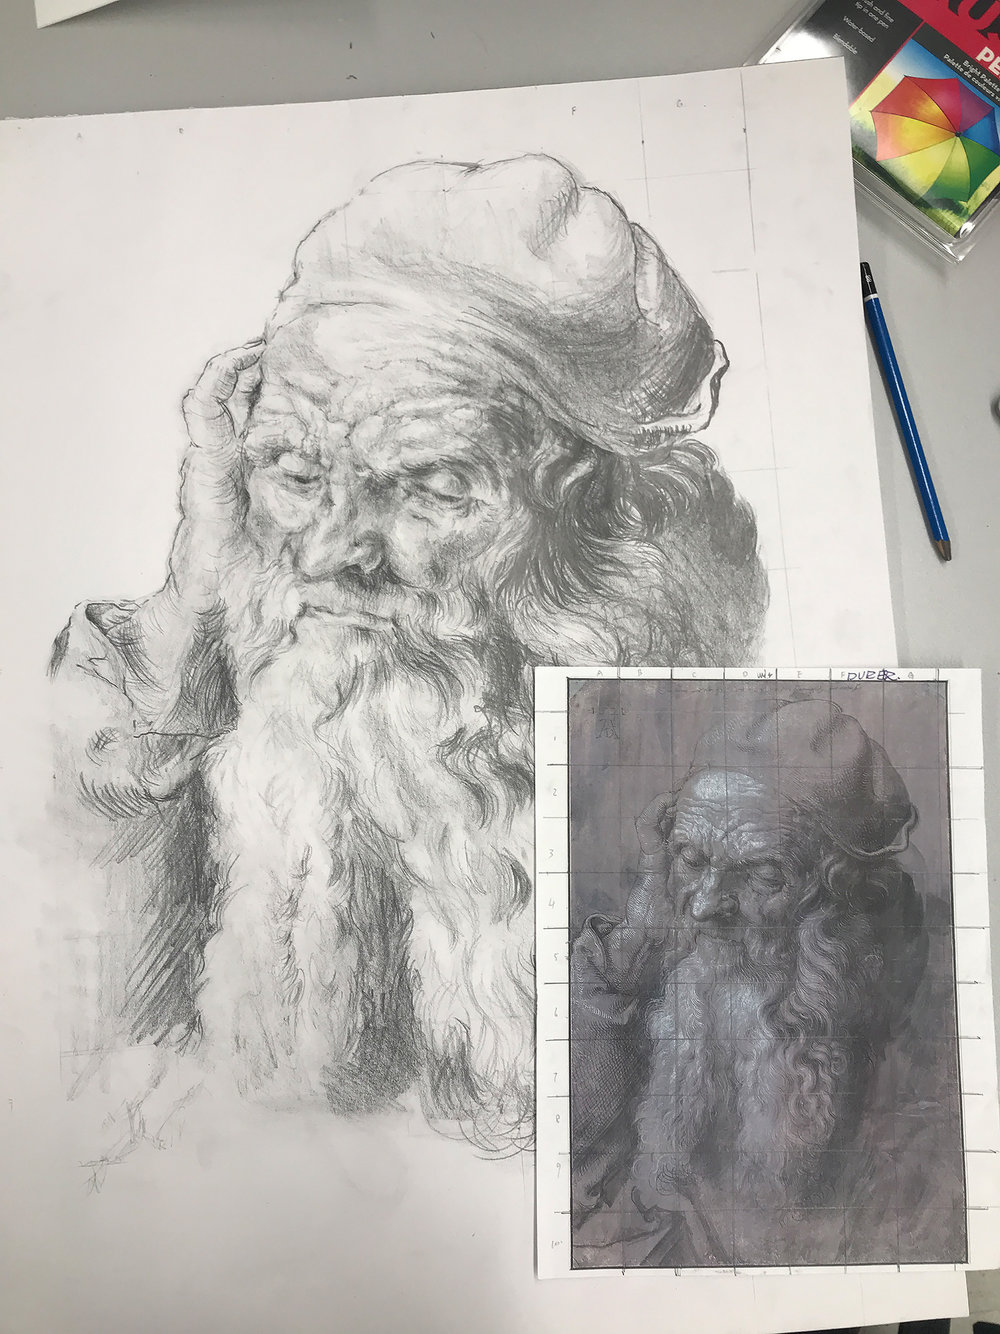 Study on Old Master, Joyce Chan (IDEA22)   Aha! This is our very first assignment for illustration class where we get to emulate and study masters' works from the Renaissance period. I chose Durer's sketch and it's really a lot of fun analyzing his amazing works and drawing style.